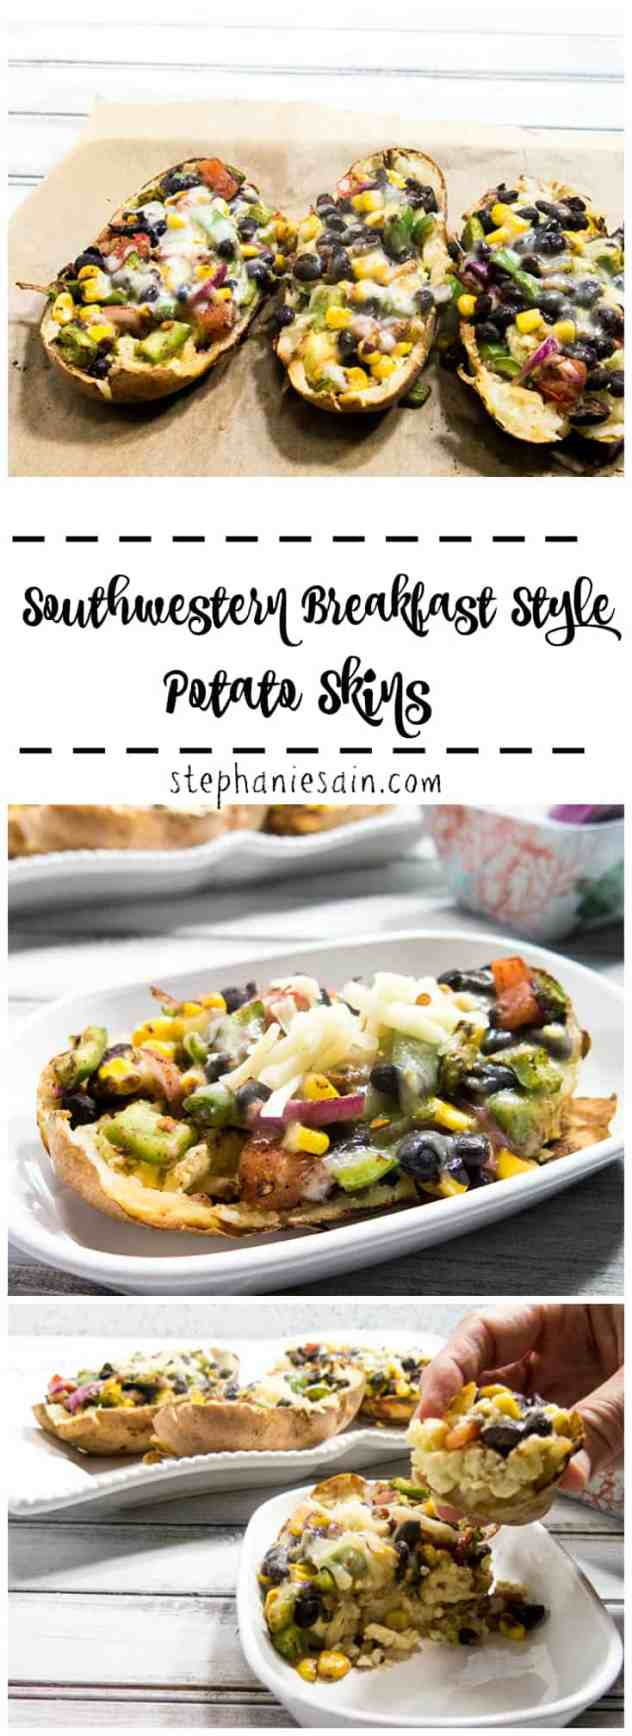 Southwestern Breakfast Style Potato Skins are a healthy, tasty, protein packed breakfast to start your day off right. Vegetarian and Gluten Free.